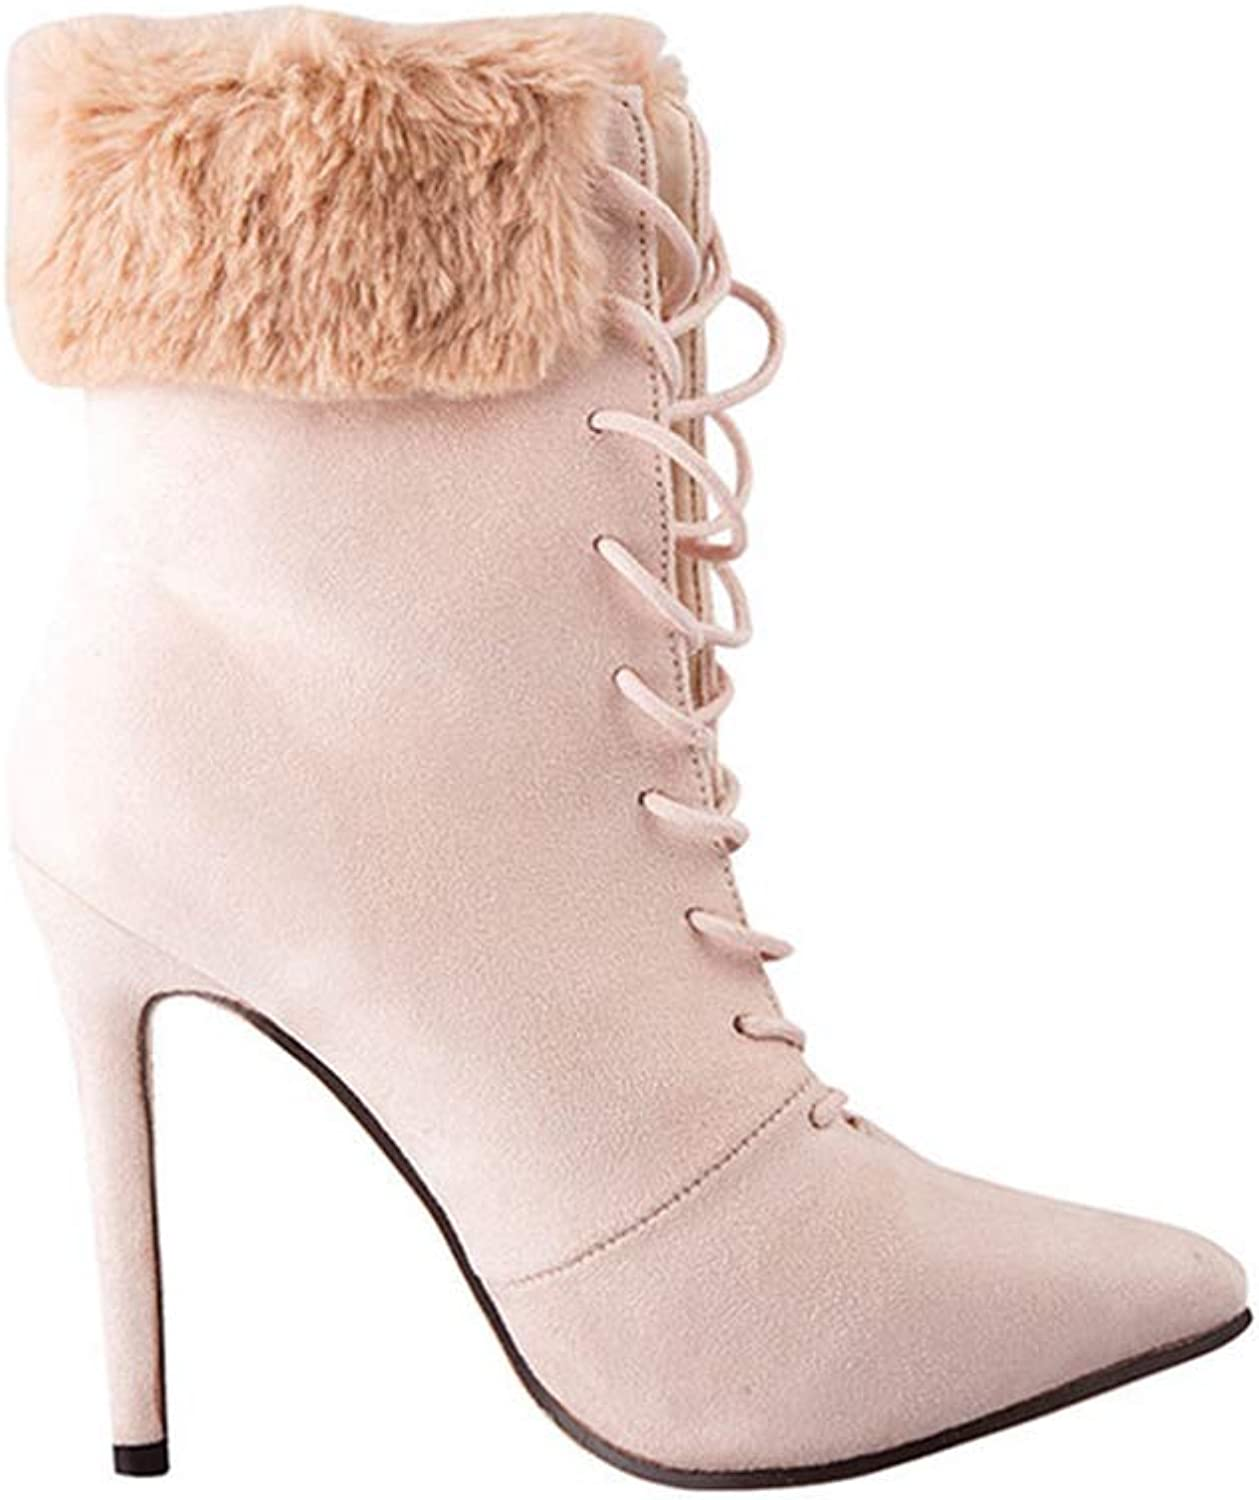 Zarbrina High Heel Ankle Boots Womens Lace-up Pointed Toe Fur Lined Suede Warm Plush Ladies Winter Bootie